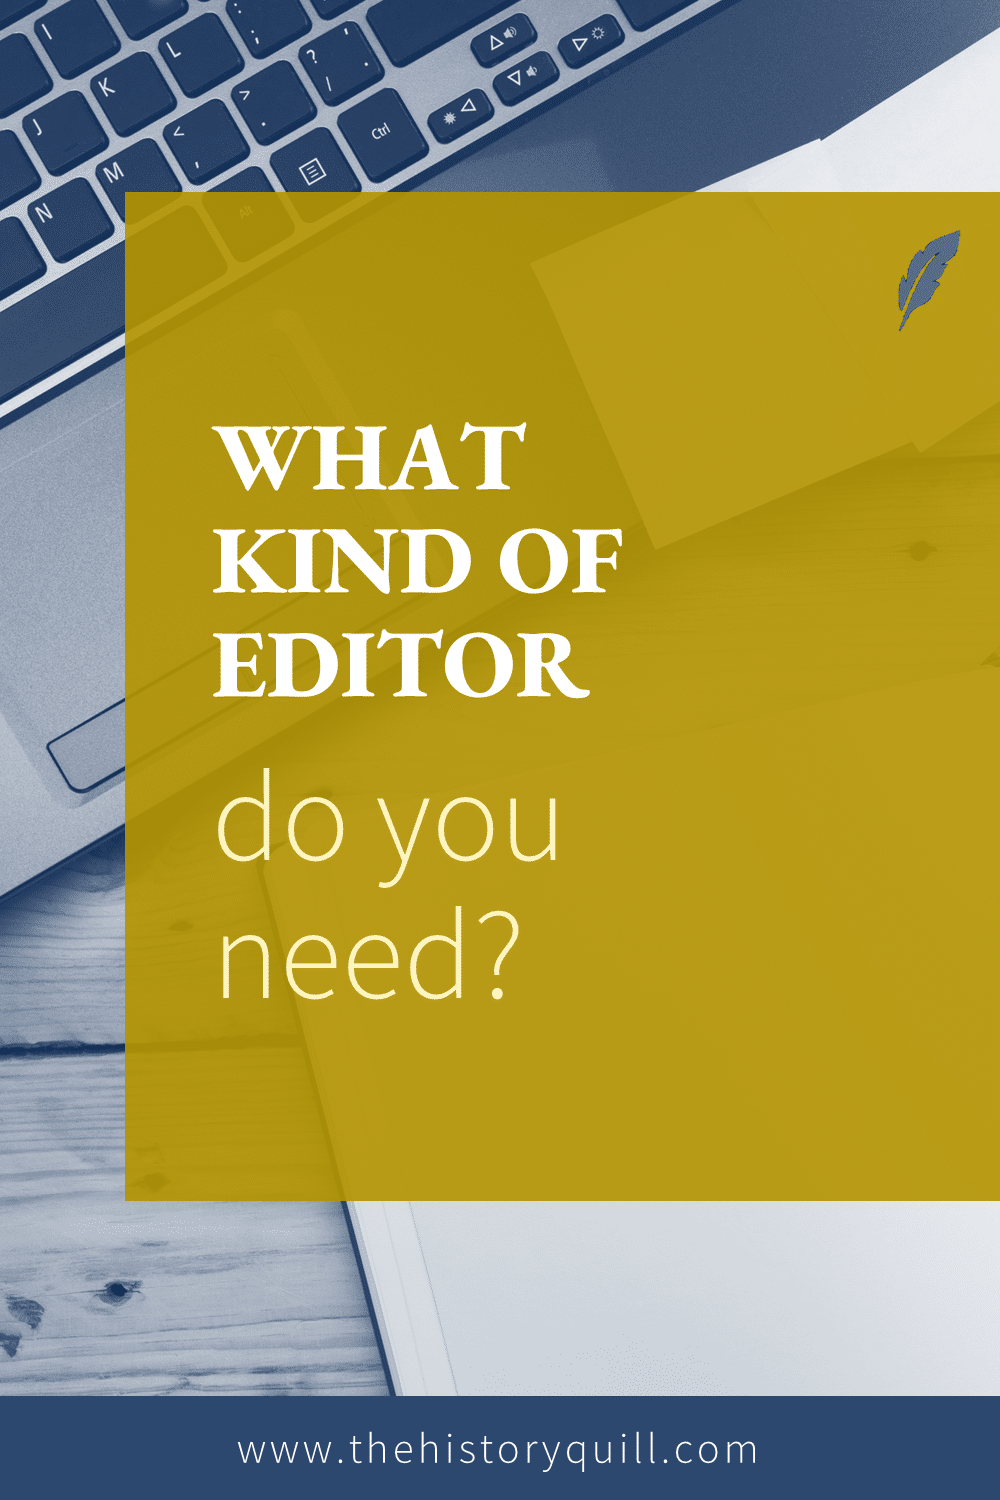 From The History Quill blog, what kind of editor do you need for your historical fiction book? Content editing, copyediting, etc.